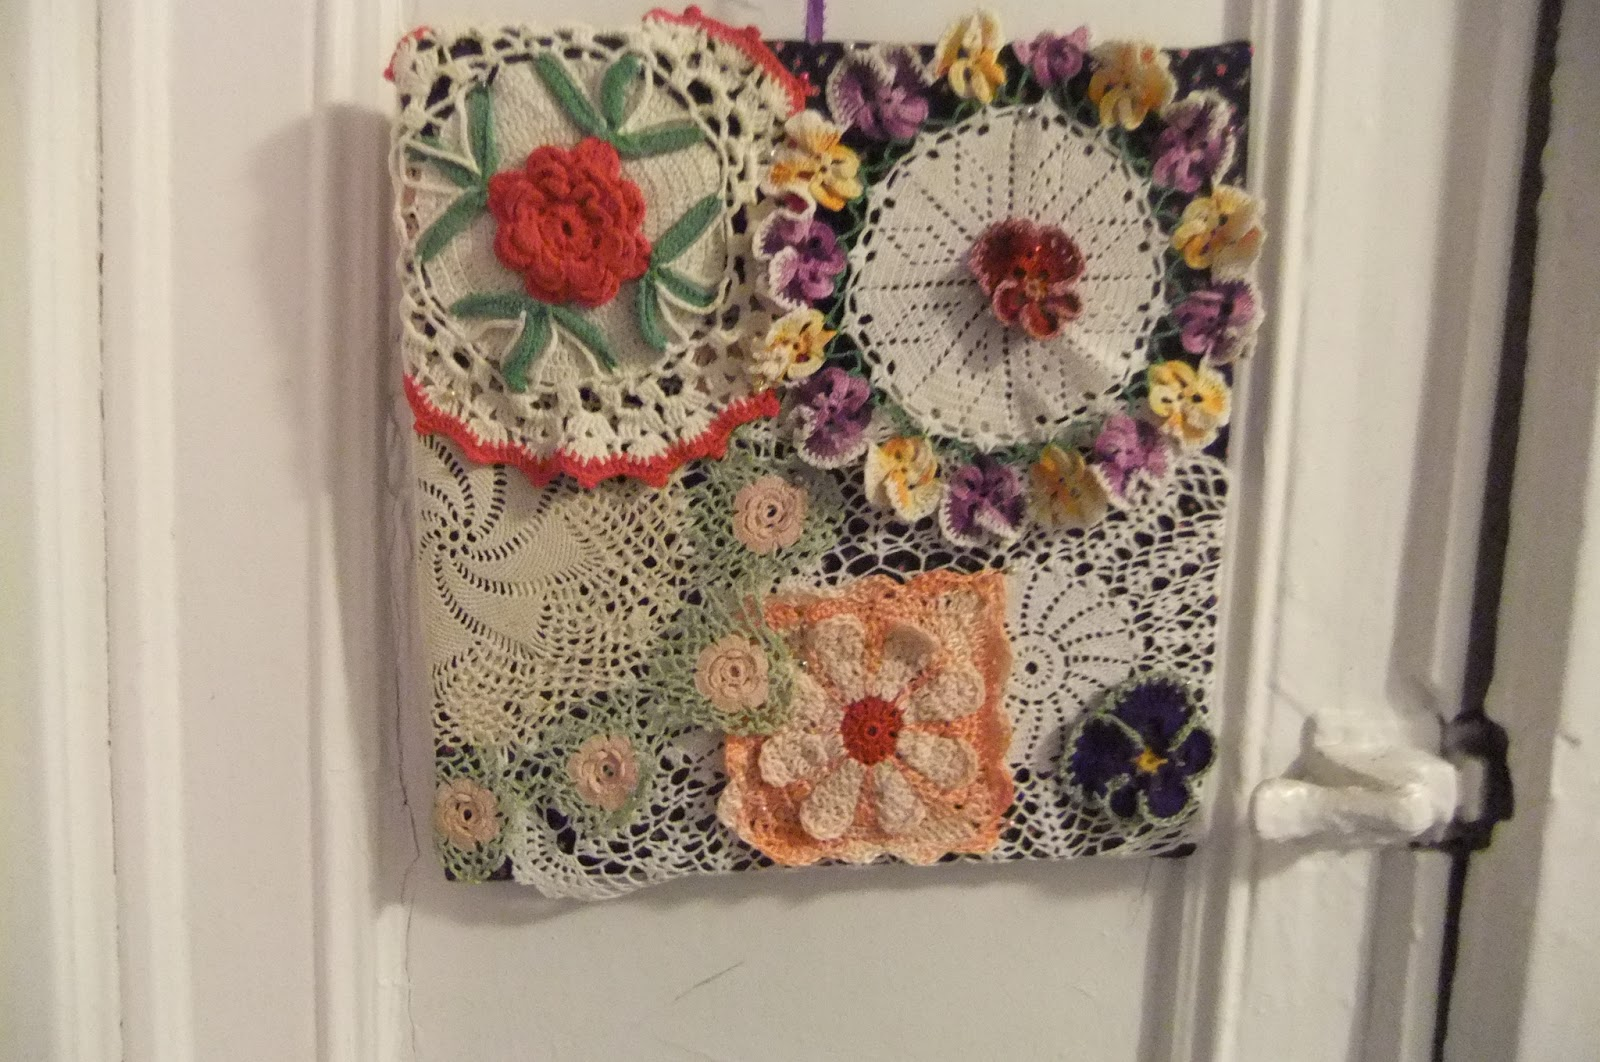 Crochet Wall Hanging : Rebeccas Crochet Blog: Doily Wall Hanging - more and better photos